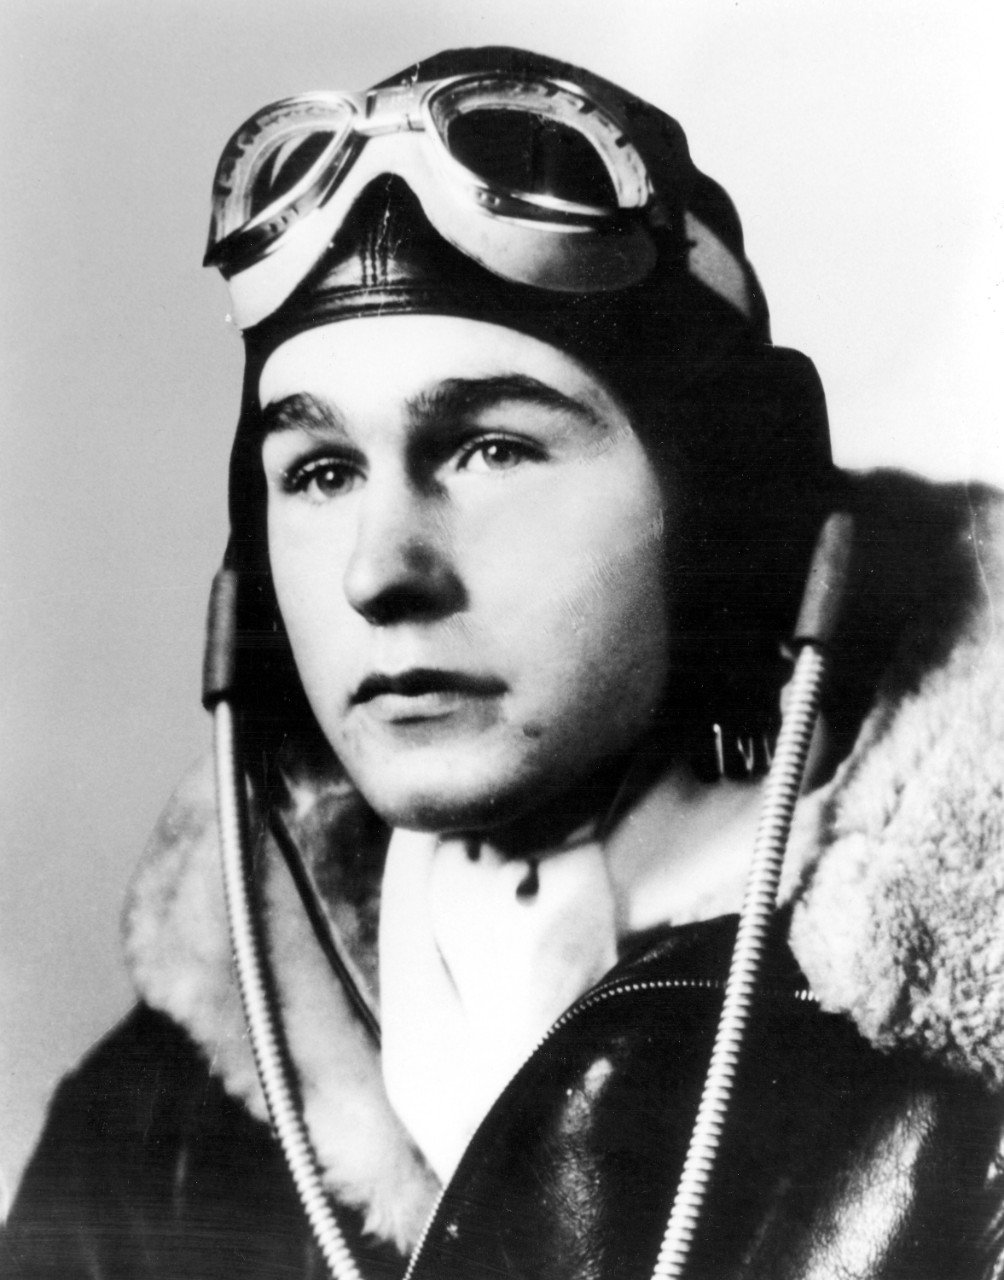 Future president George H.W. Bush trained as a Navy aviator at the Navy Pier facility during World War II.